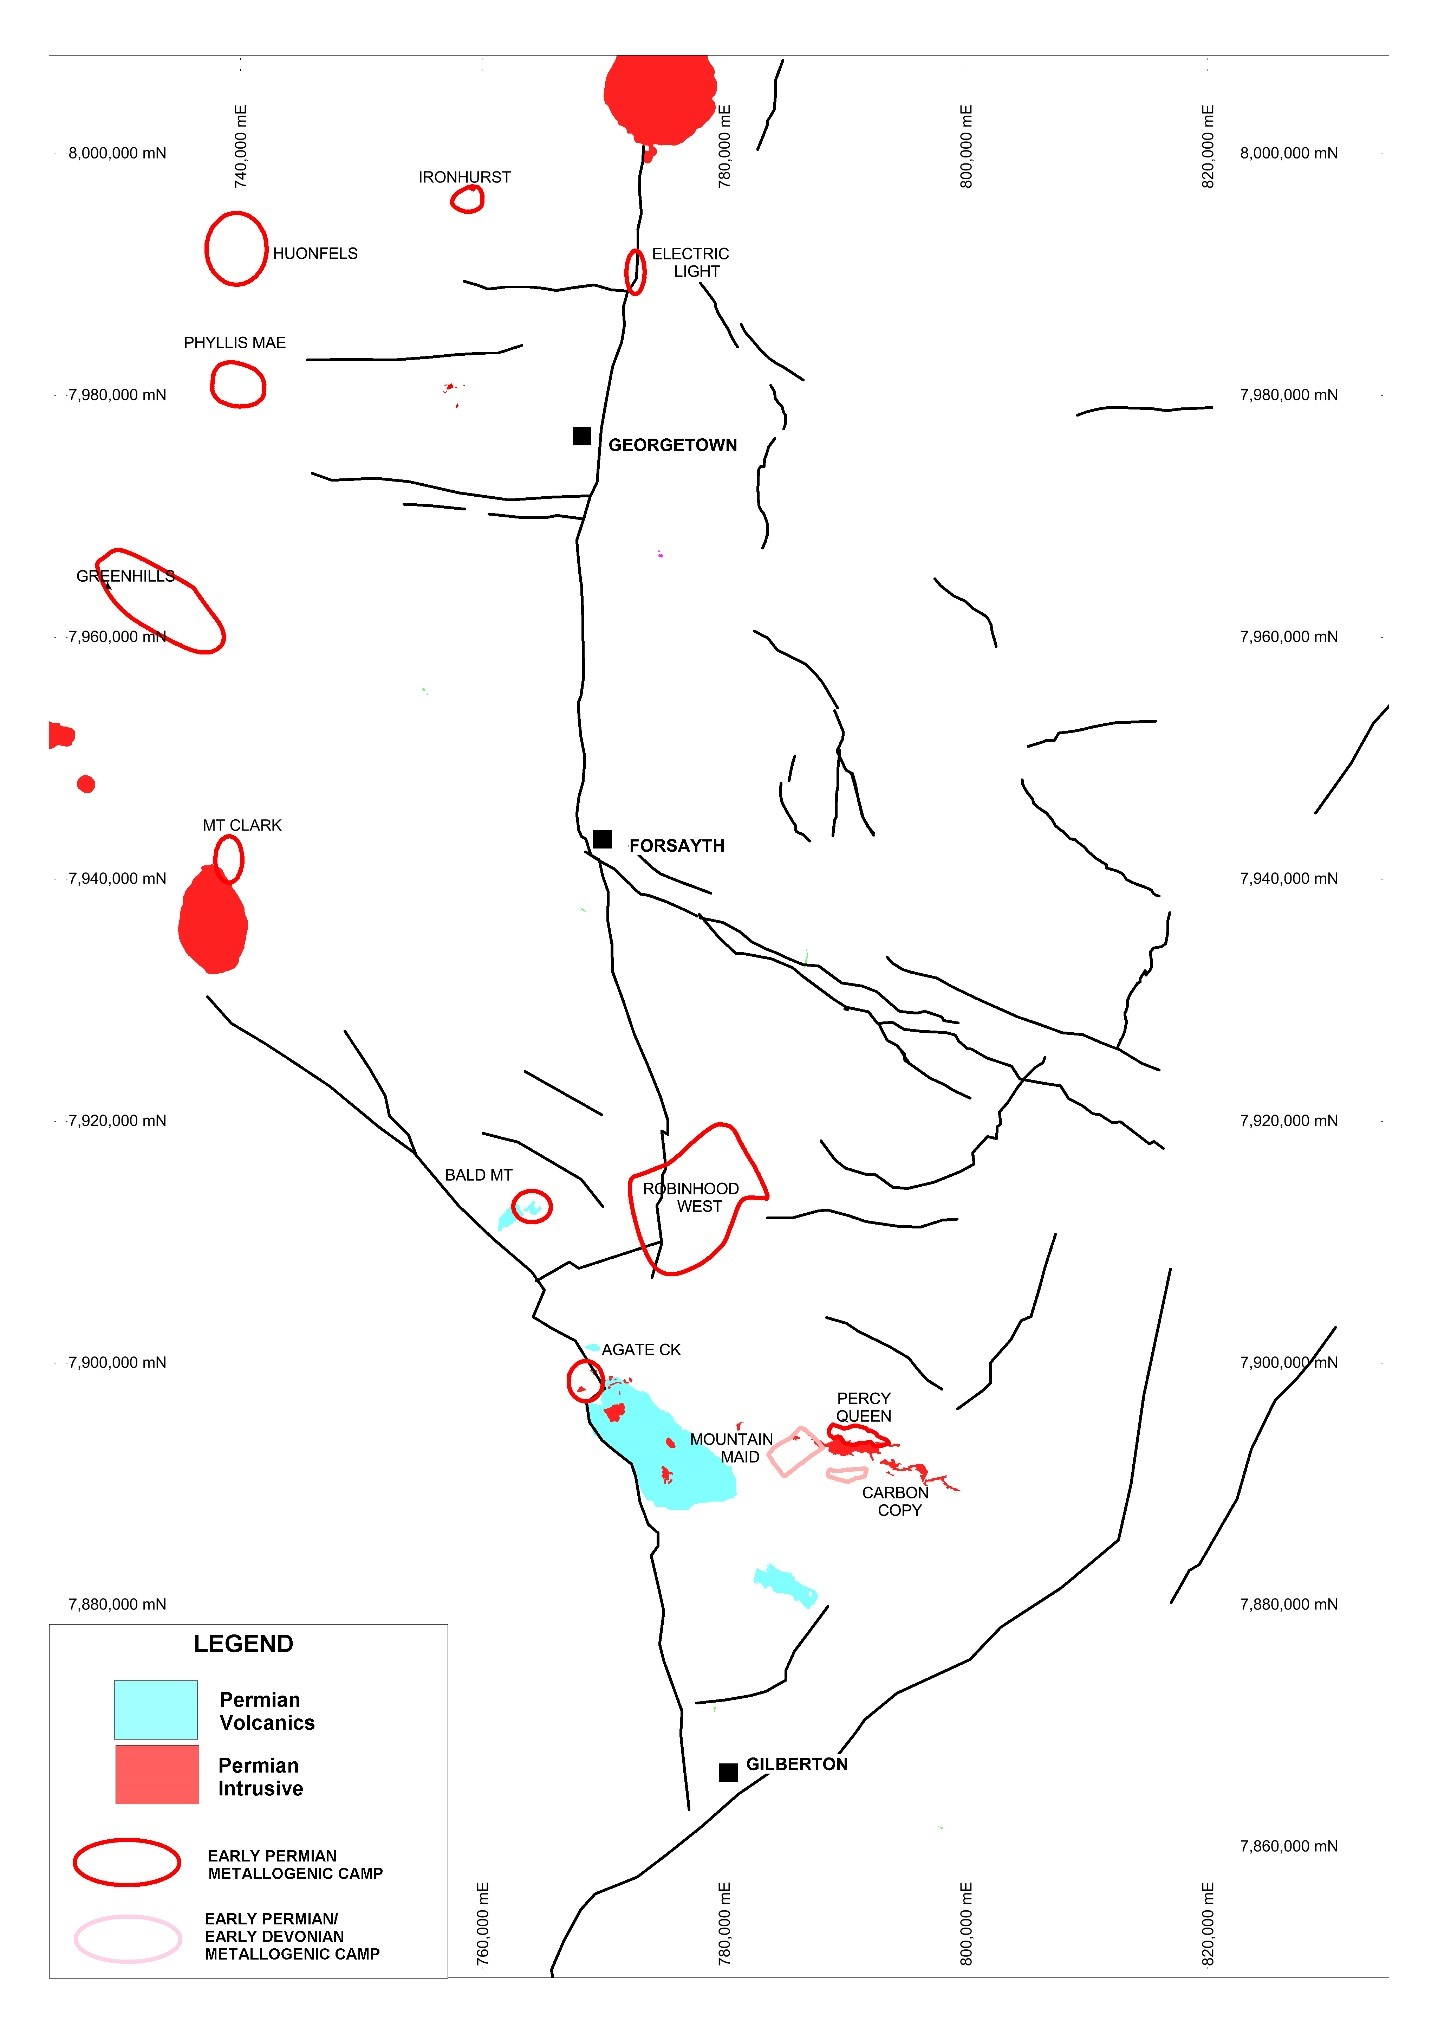 Figure 28: Permian geology with Permian metallogenic camps